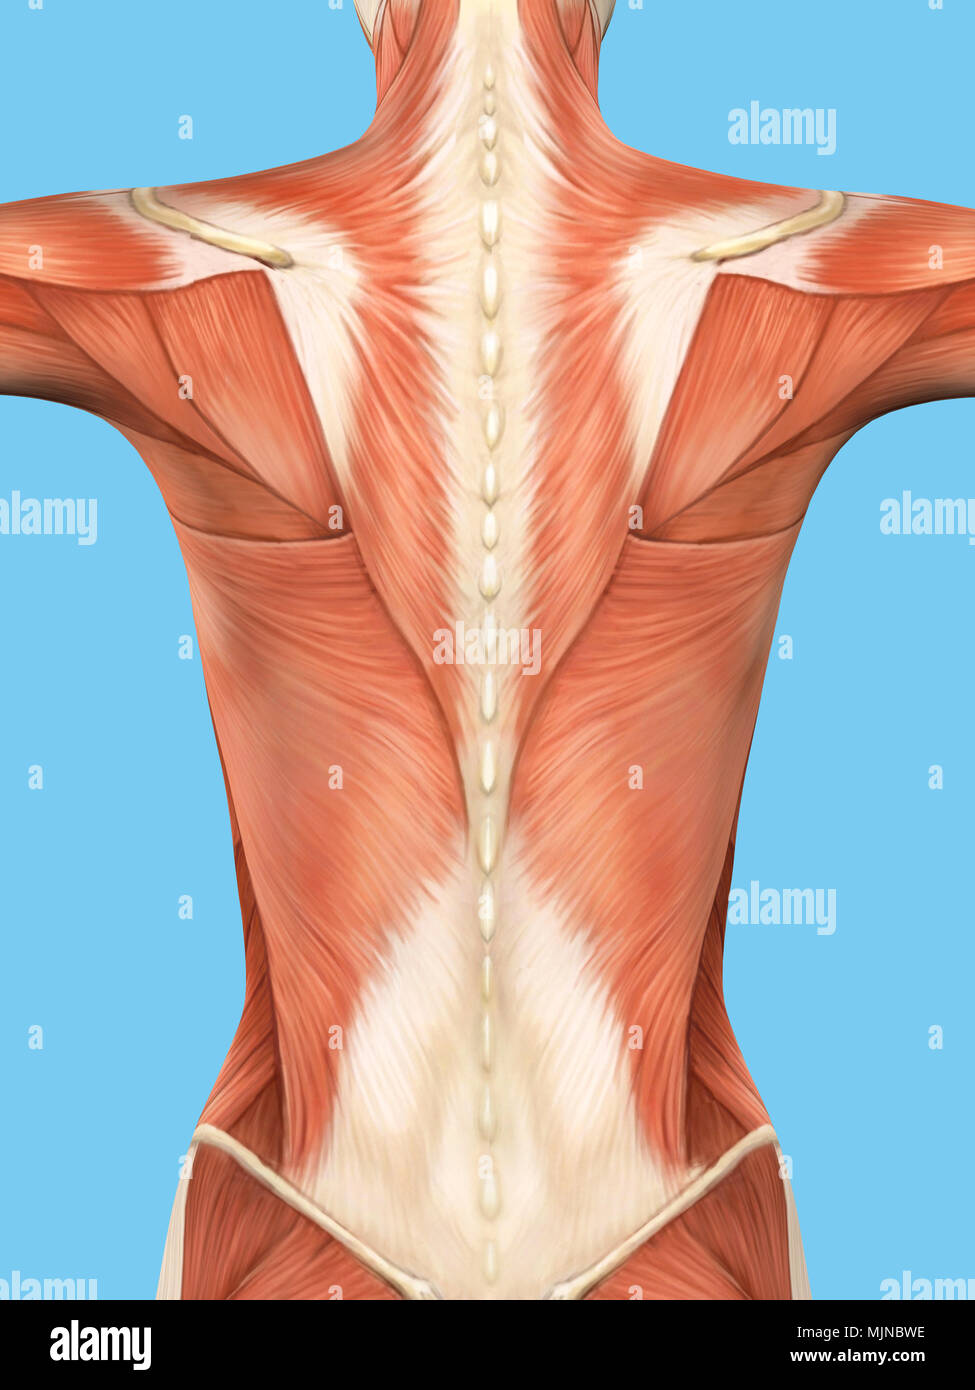 Anatomy Male Muscular Back View Stock Photos Anatomy Male Muscular